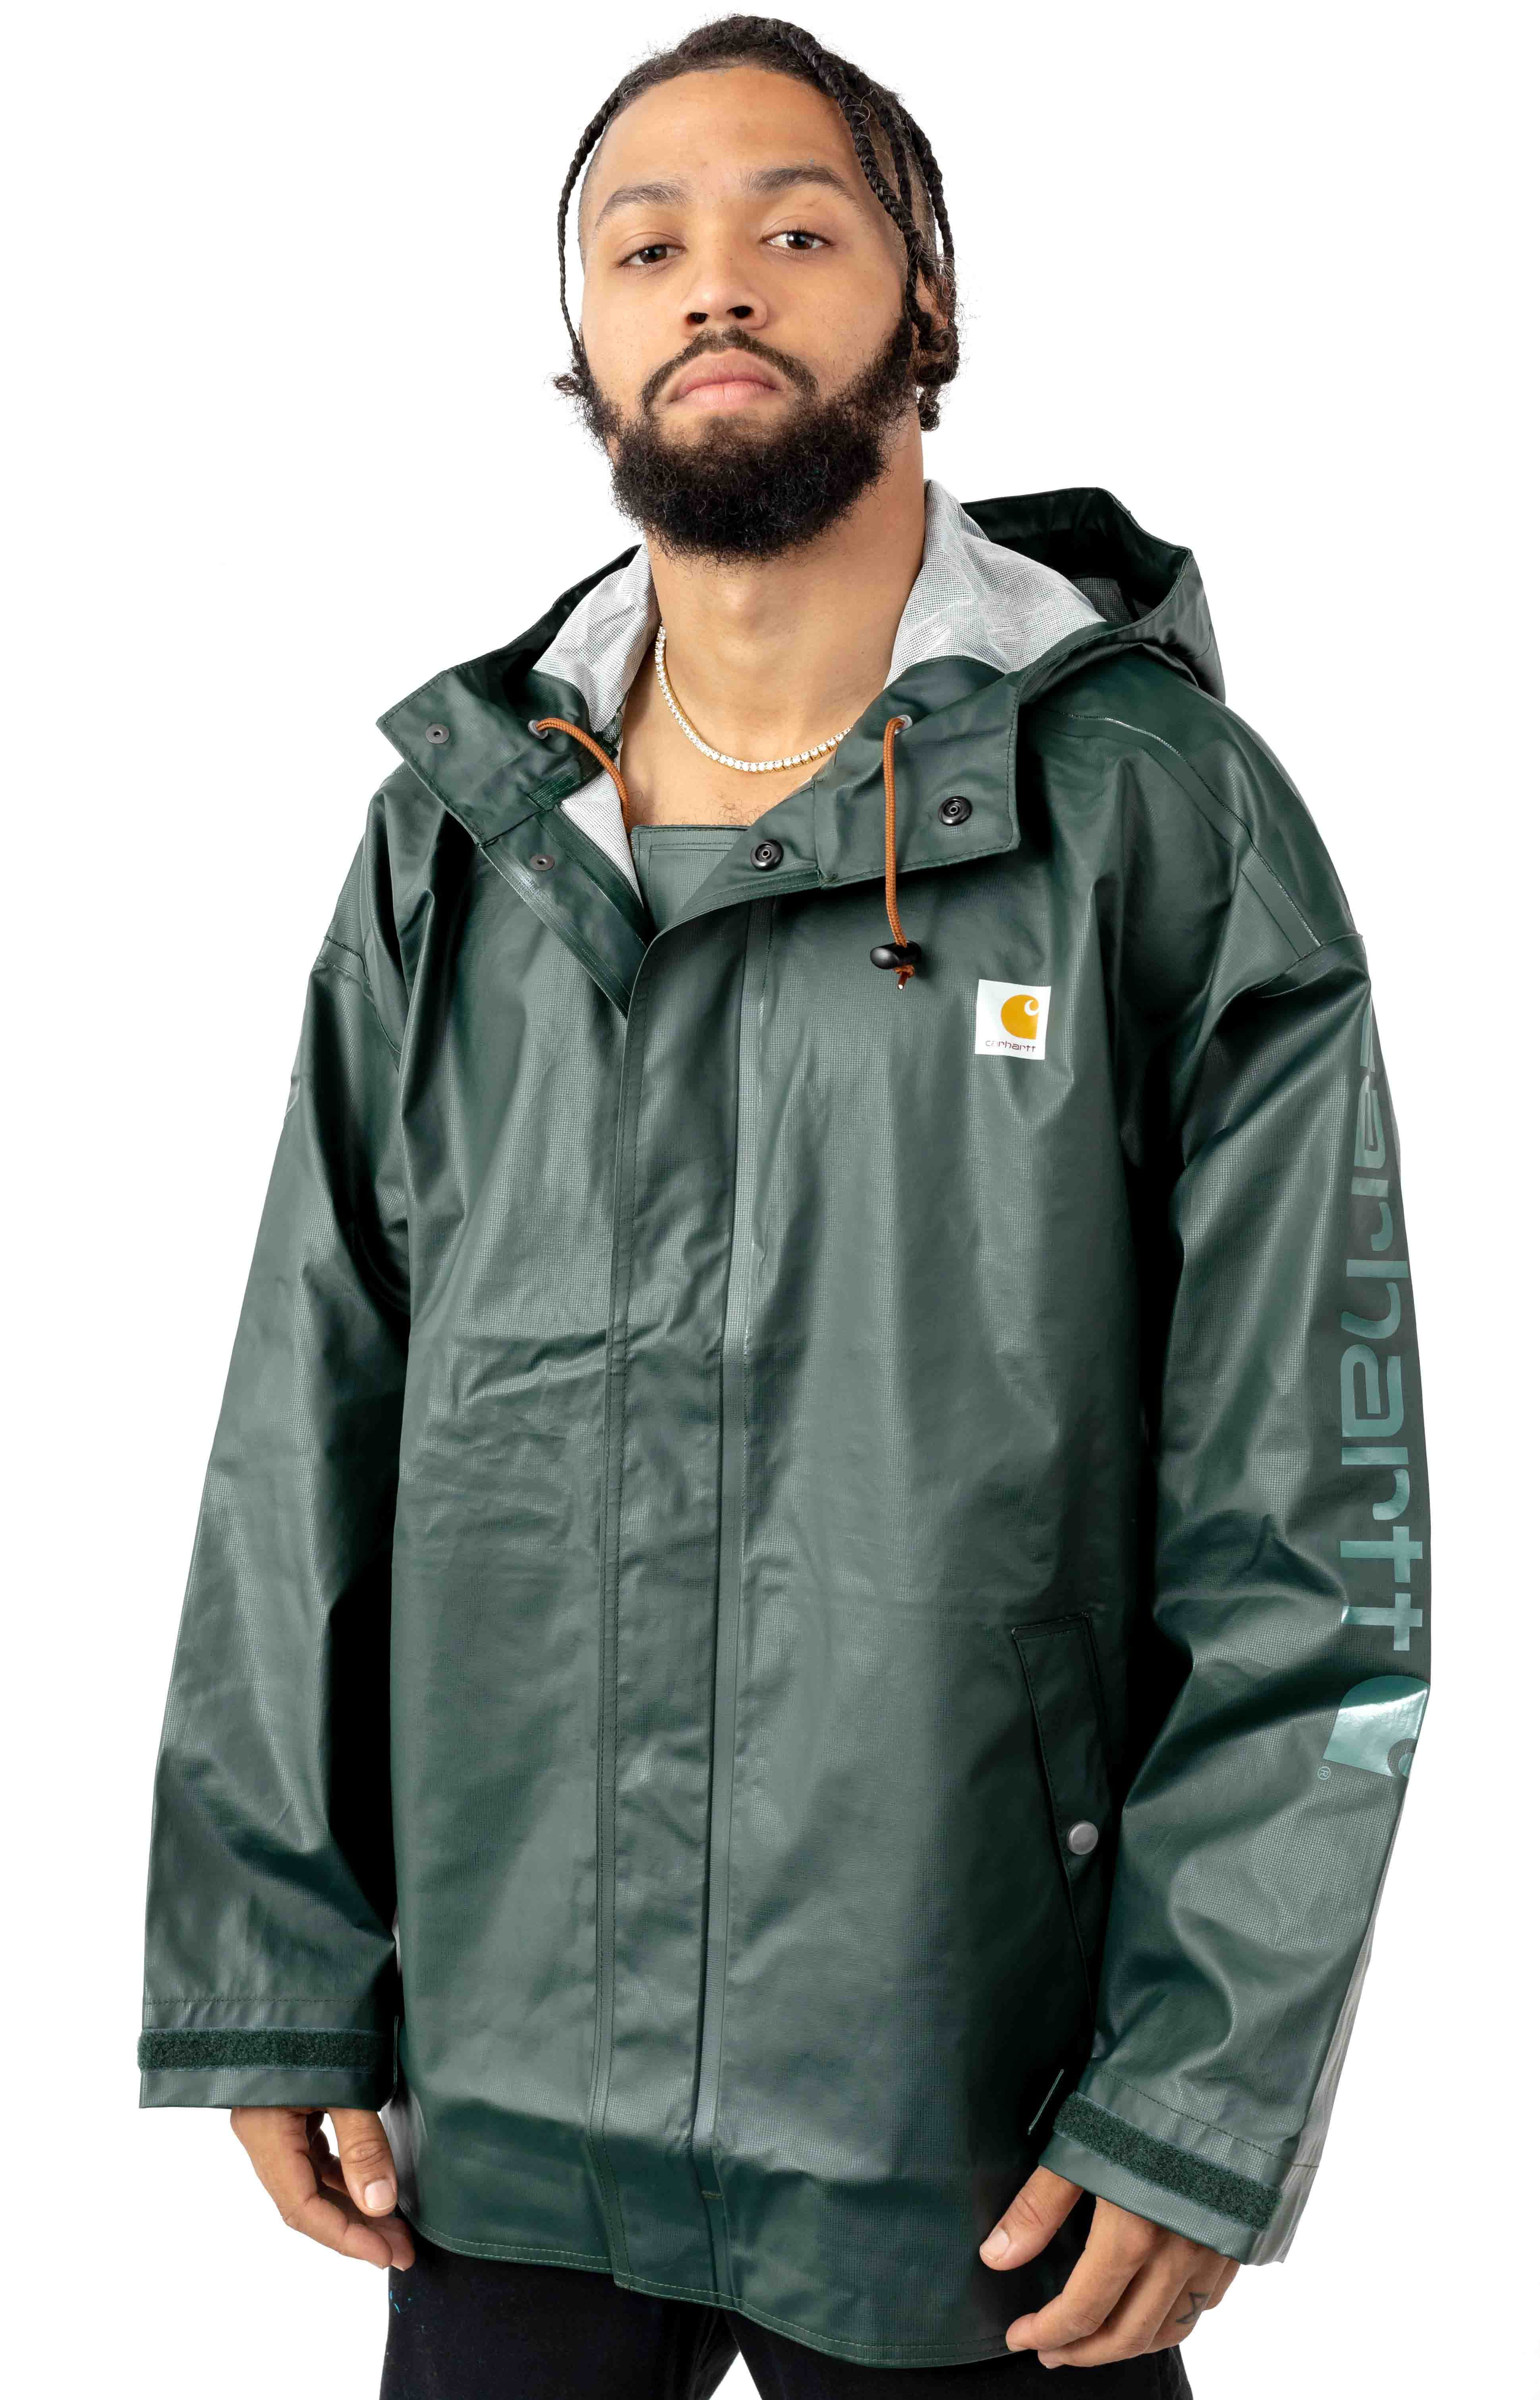 (103509) Lightweight Waterproof Rainstorm Jacket - Canopy Green